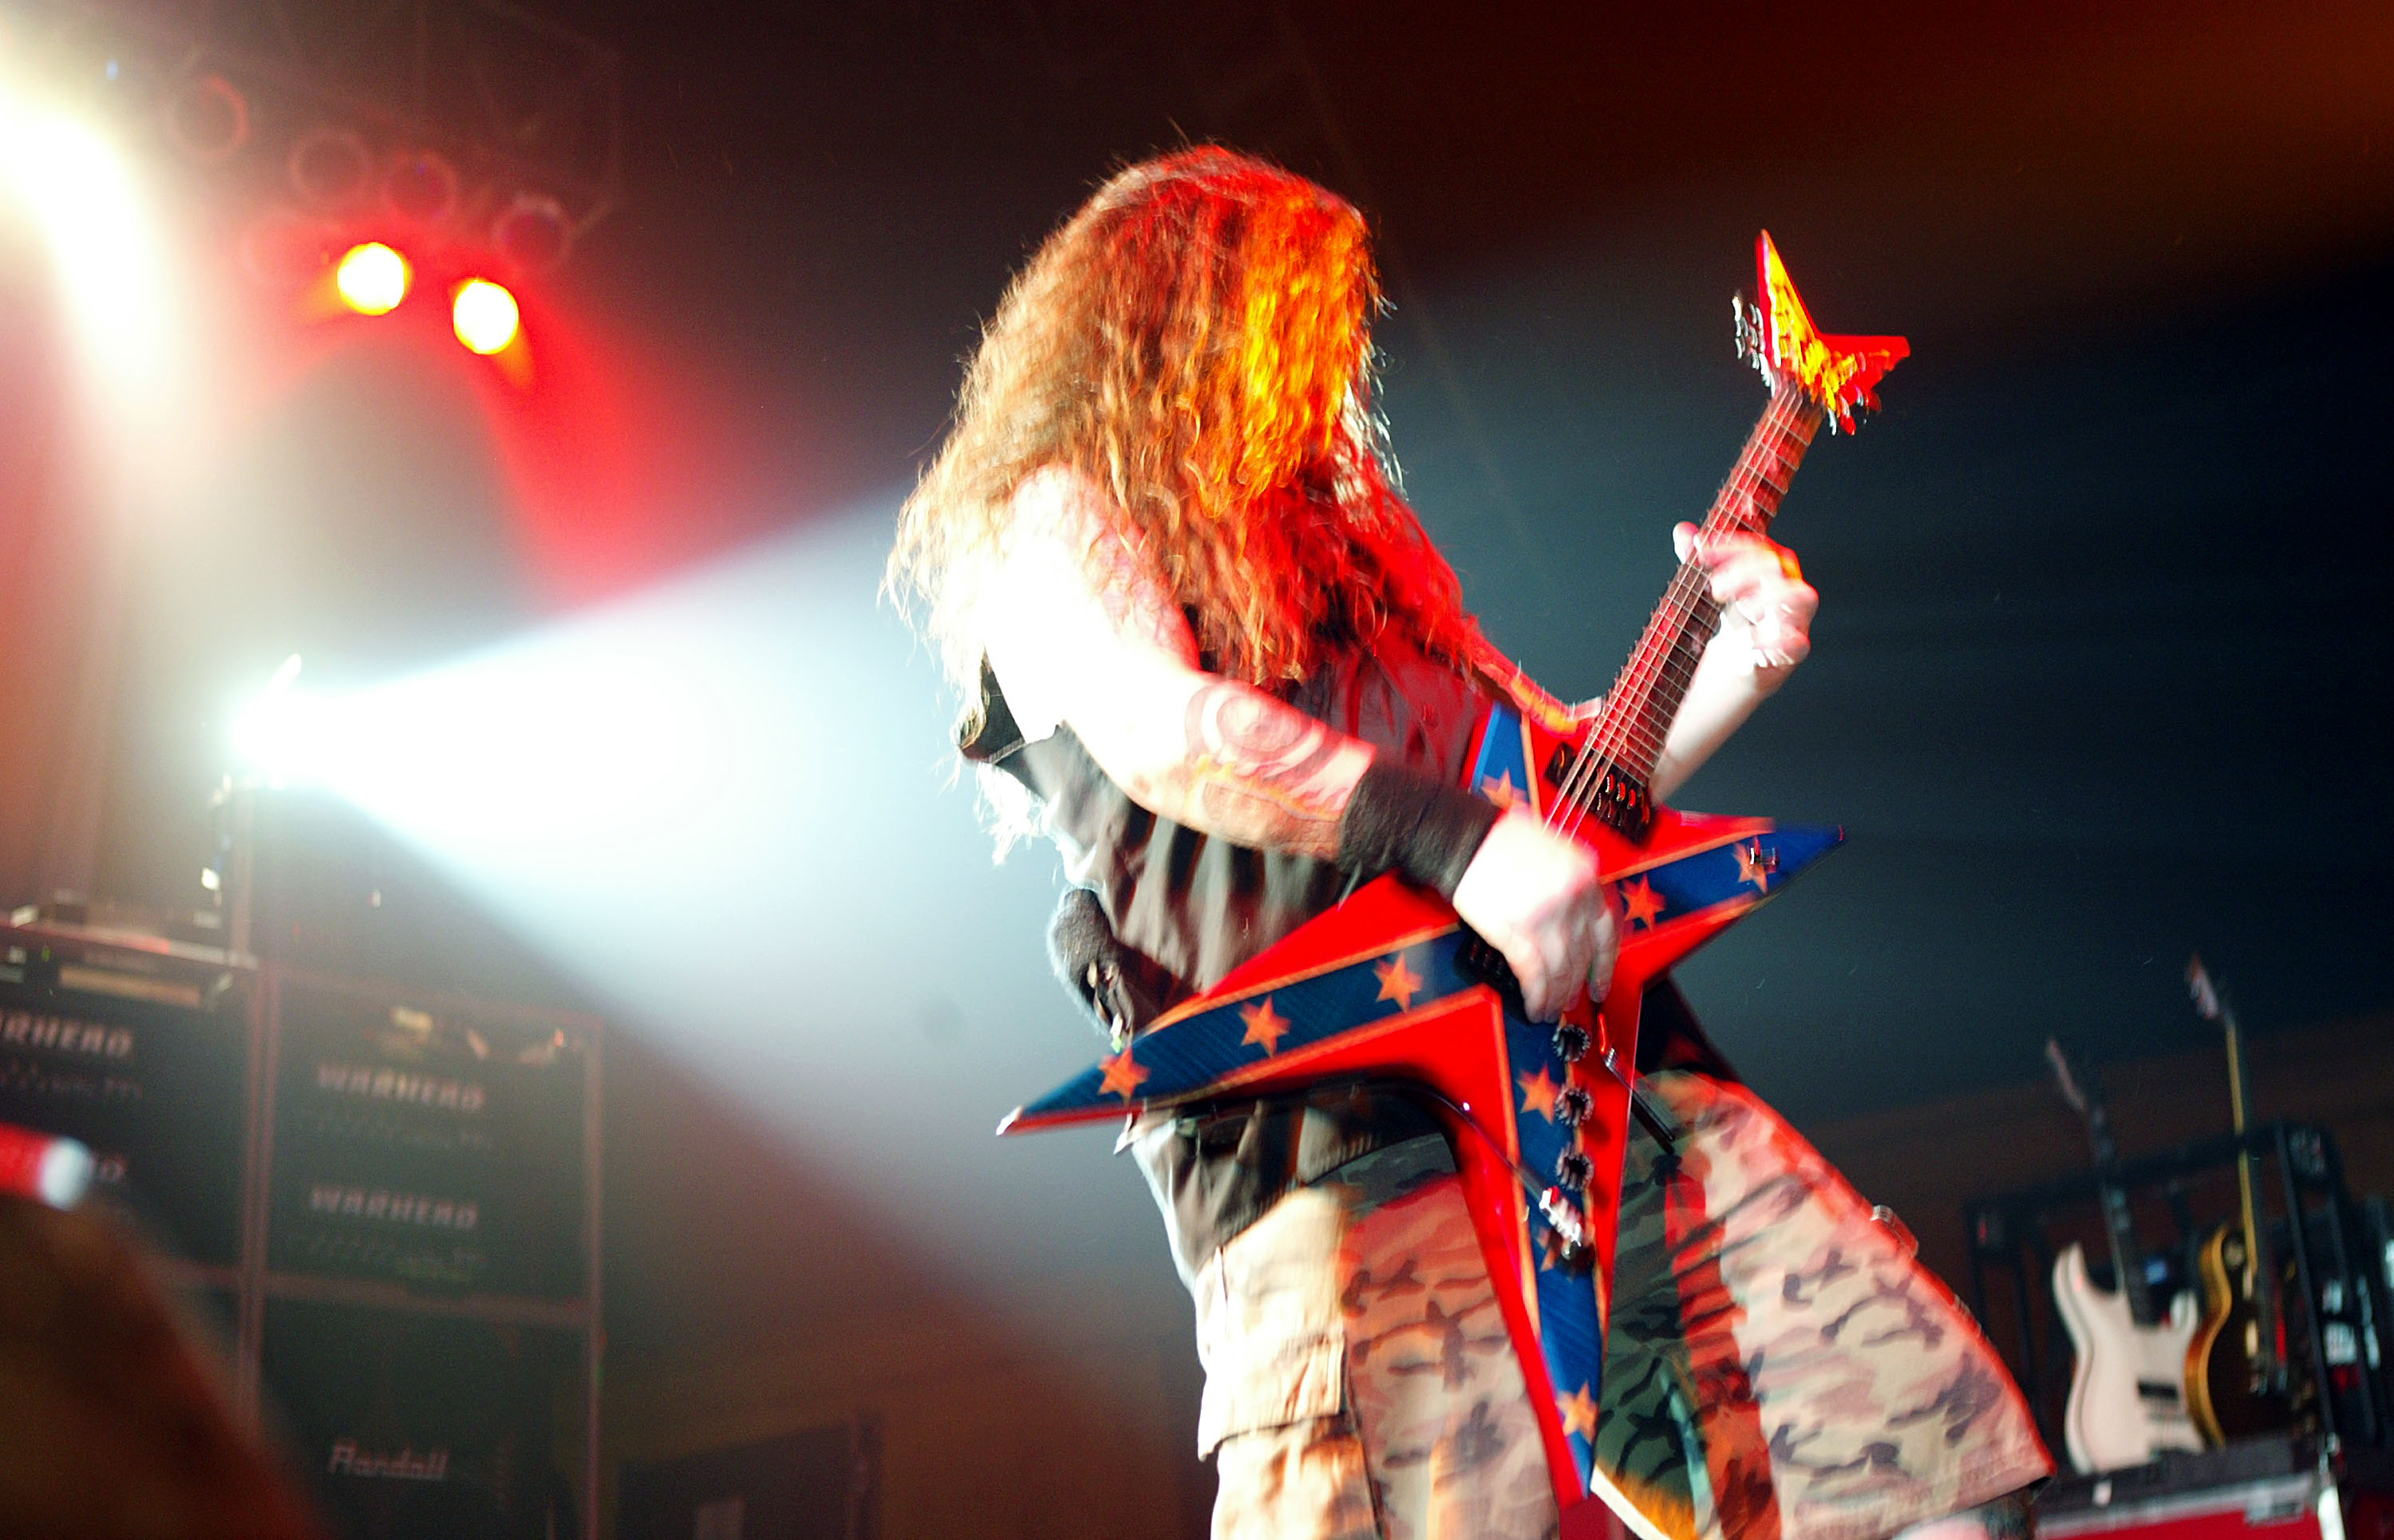 Pantera's Dimebag Darrell was shot dead in 2004 while performing after a crazed fan jumped on stage and shot him in the head five times. (Image Source: Getty Images)